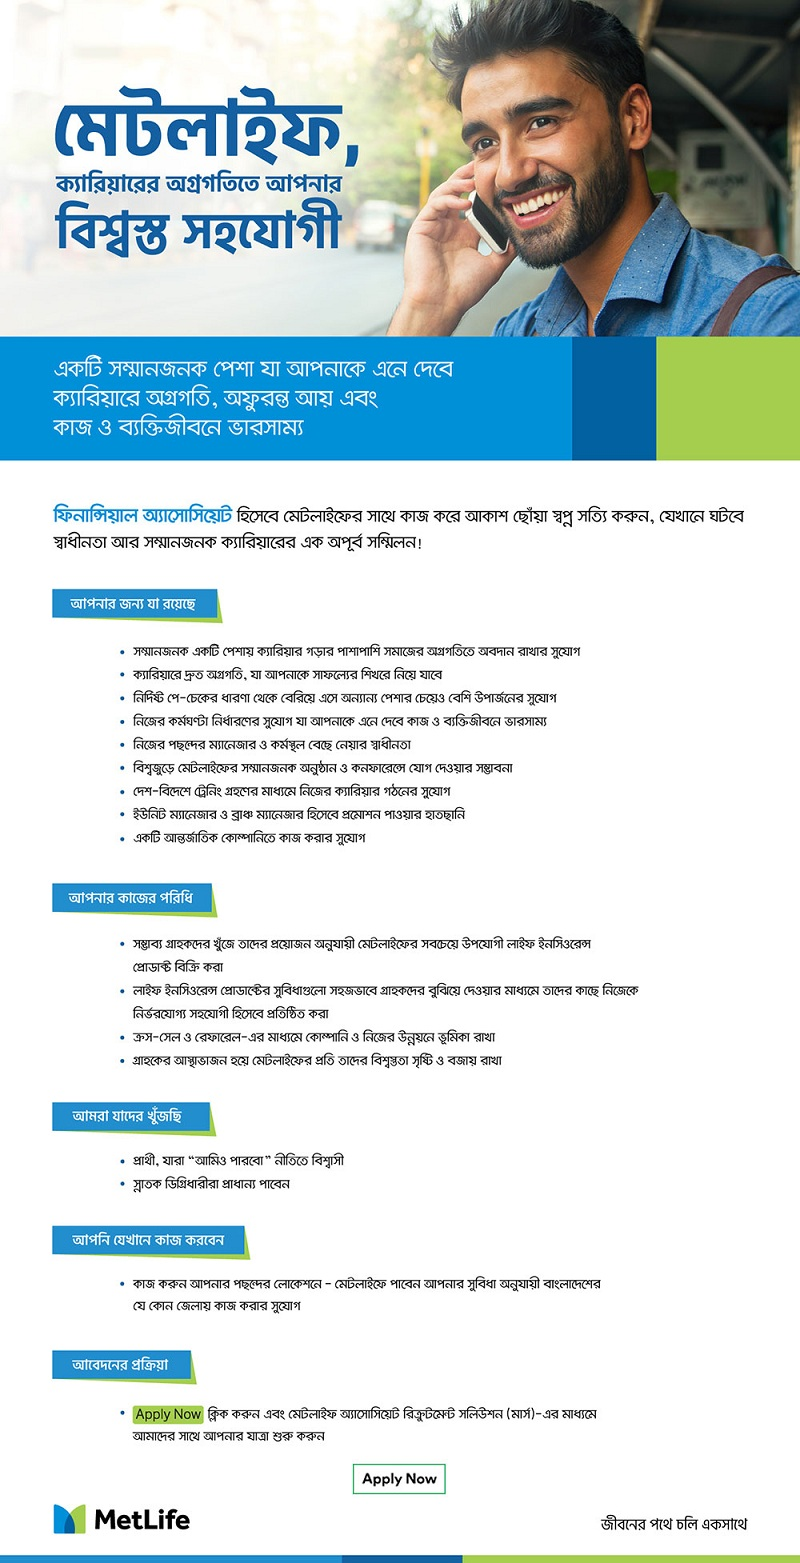 MetLife, Inc Bangladesh Job Circular 2019